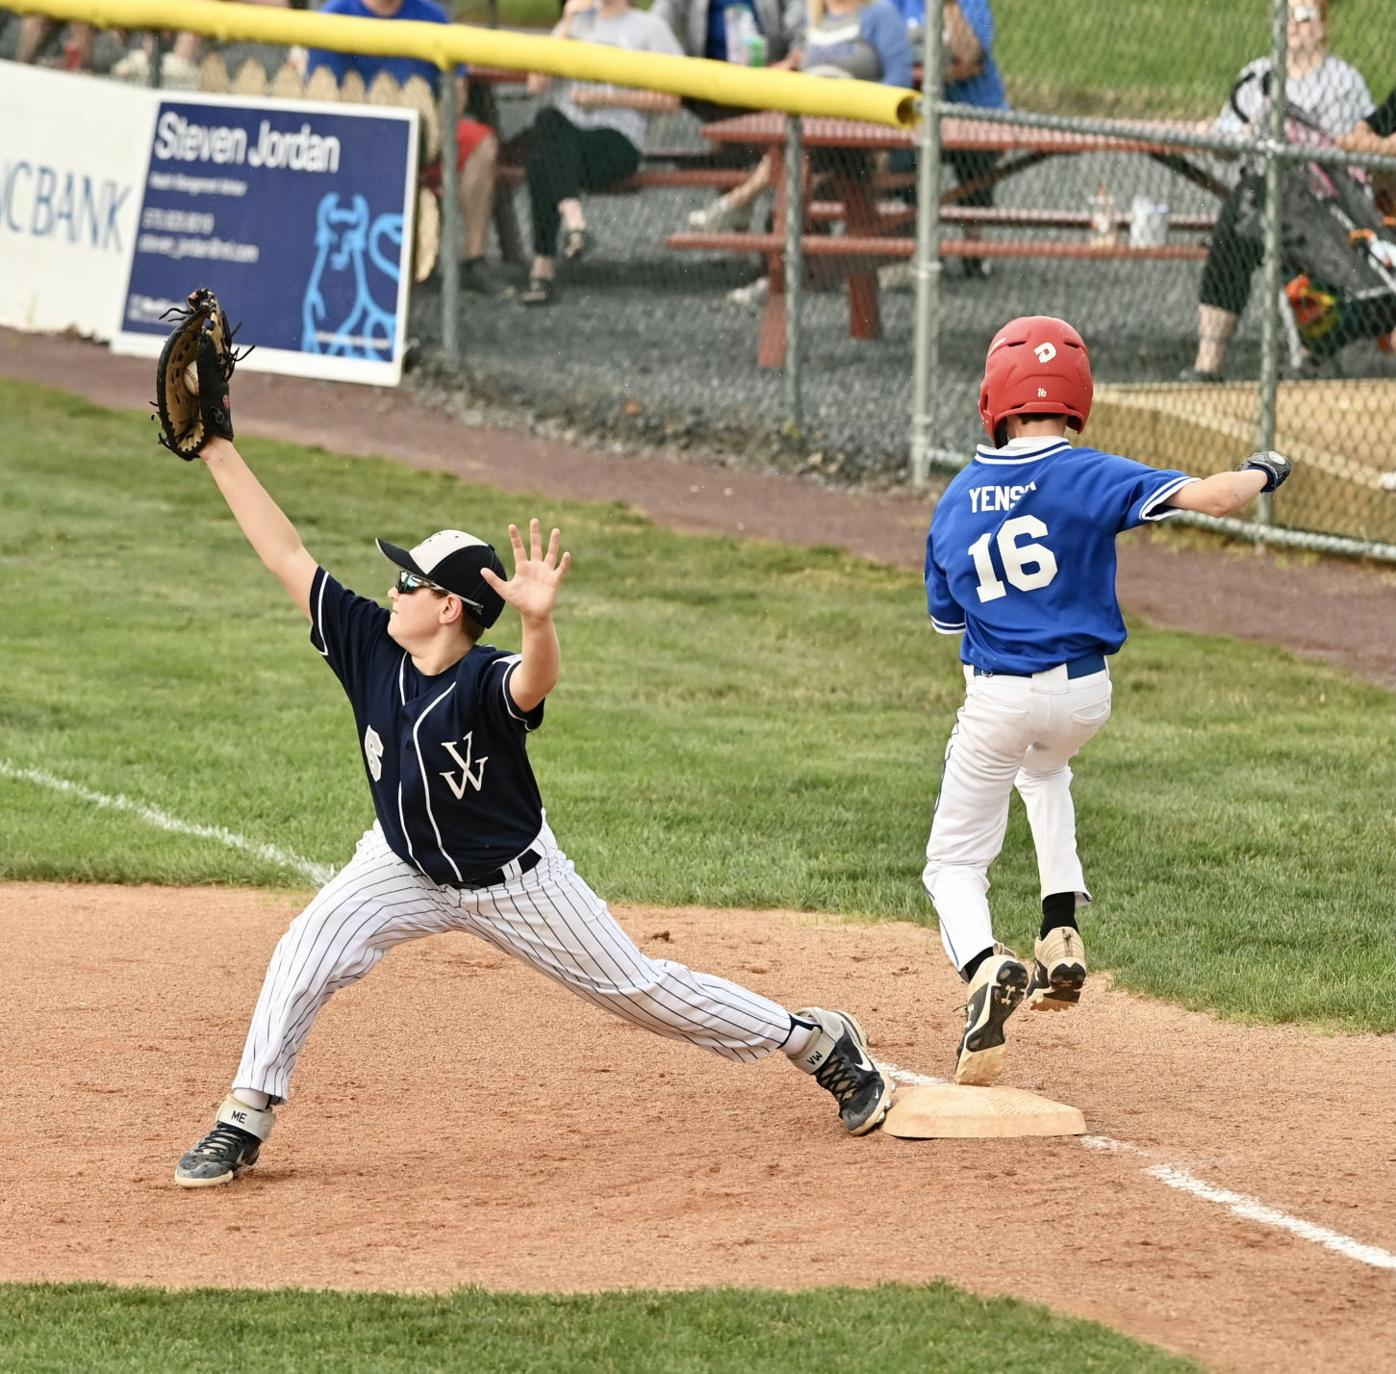 Valley West rolls to District 18 10-12 Little League championship